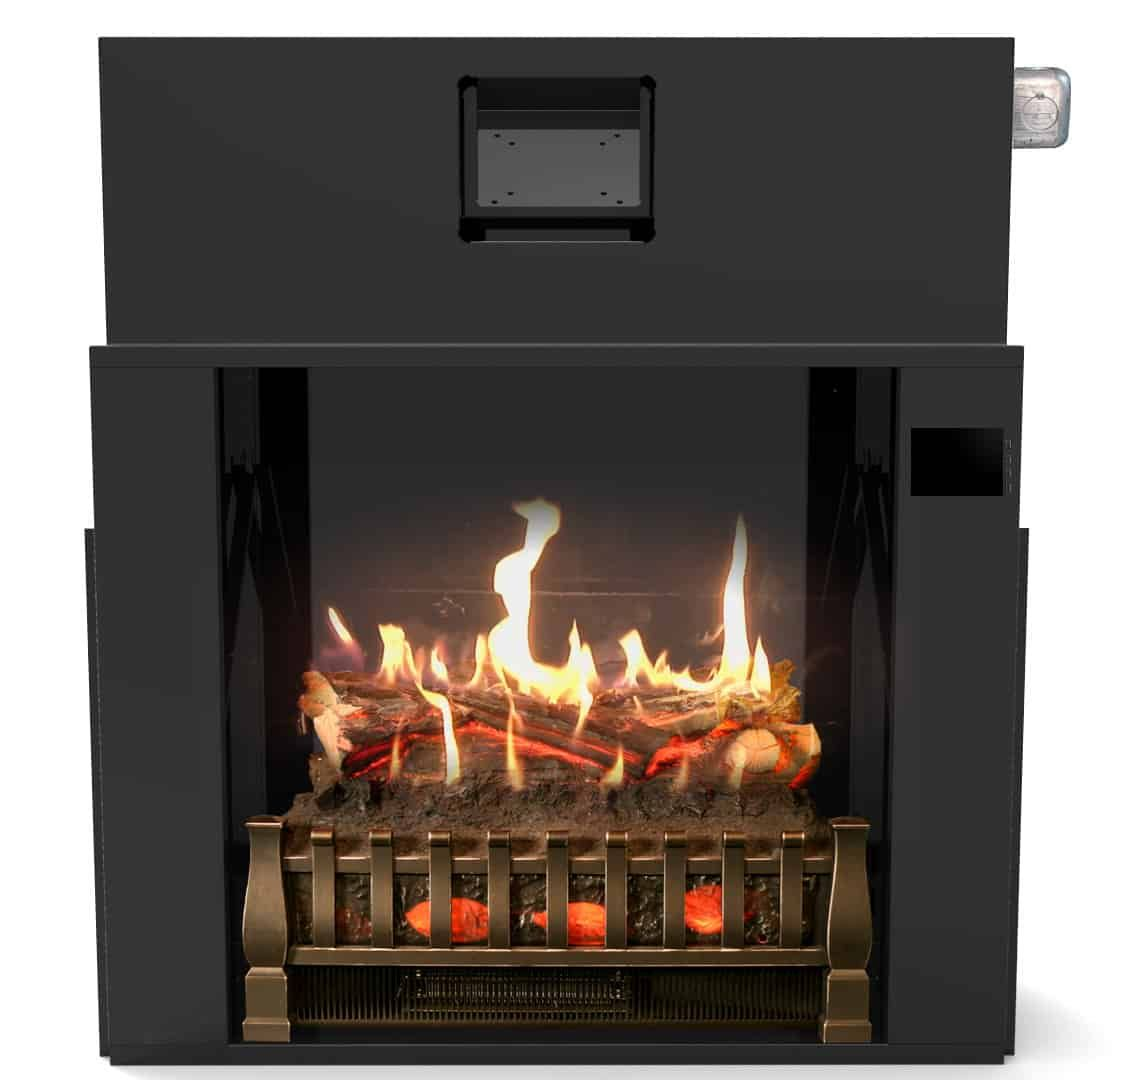 28 Inch Electric Fireplace Insert With Sound Fireplace Inserts Realistic Electric Fireplace Electric Fireplace Insert